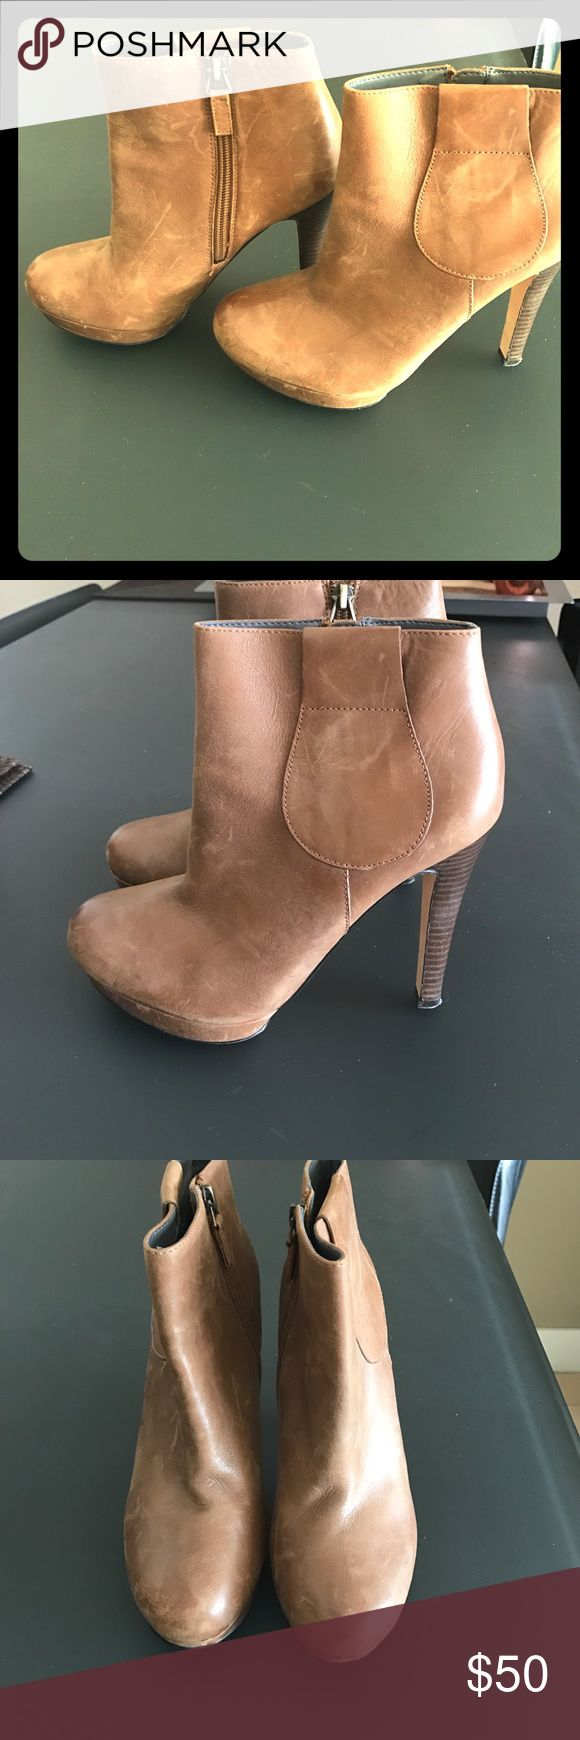 Rosegold brand Tan leather ankle boots. Sz 7.5 Distressed leather ankle boots by Rosegold. Tan / Camel colored. Size 7.5. Great condition! Rosegold Shoes Ankle Boots & Booties